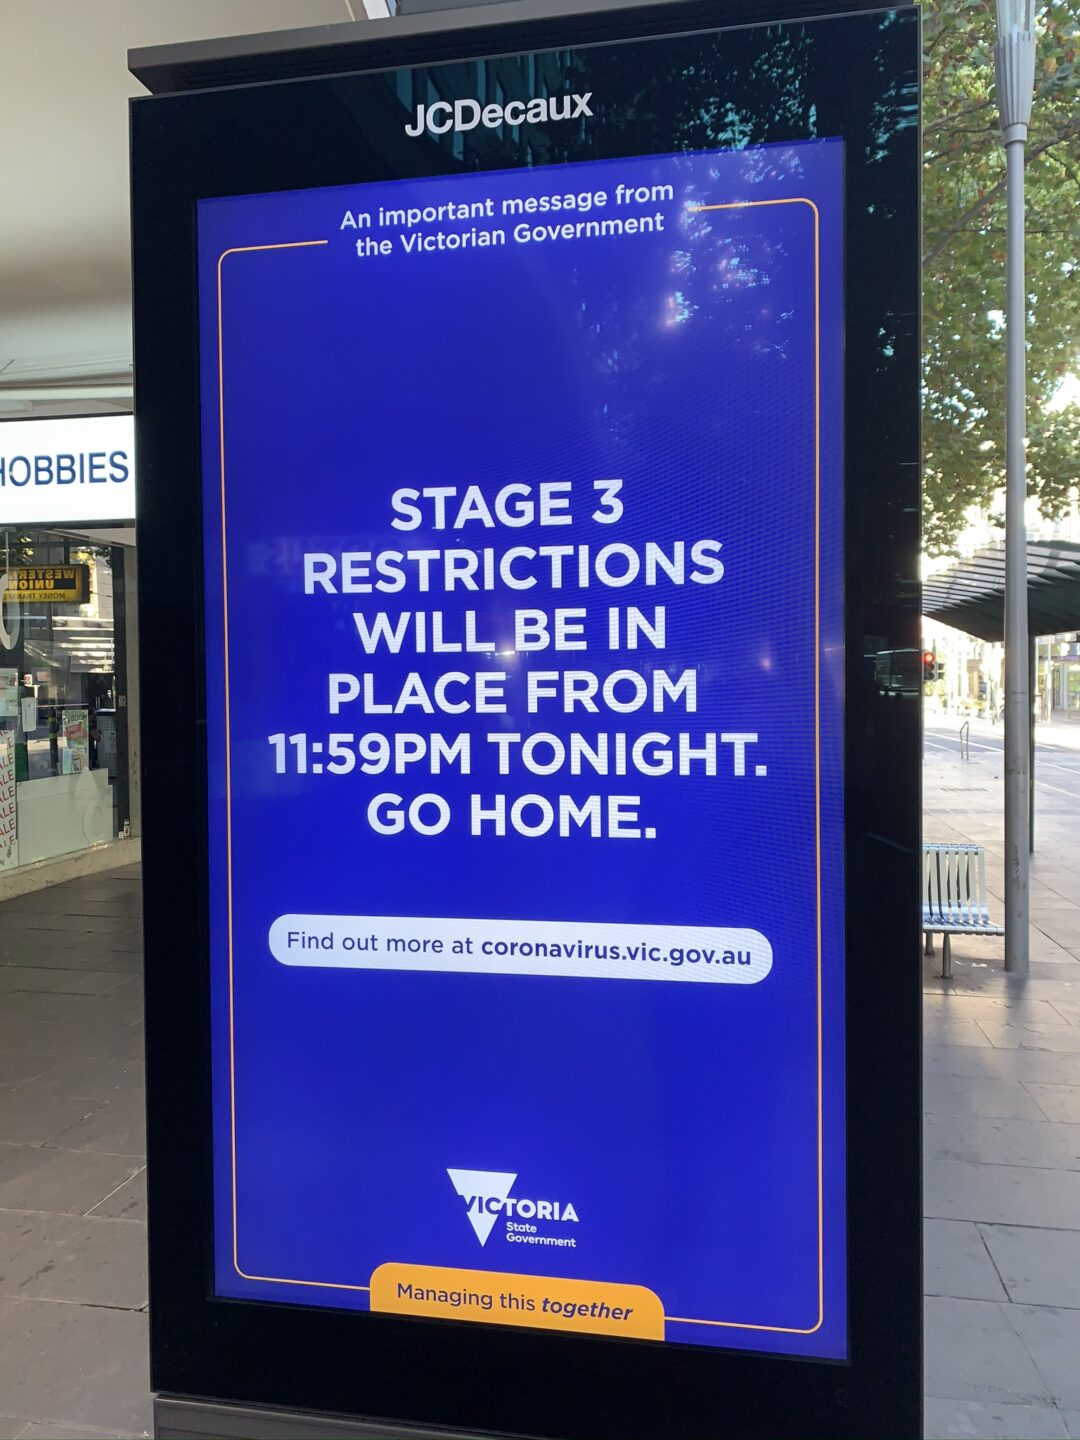 a bus stop sign that says 'stage 3 restrictions will in be in place from 11:59pm tonight. Go Home.'